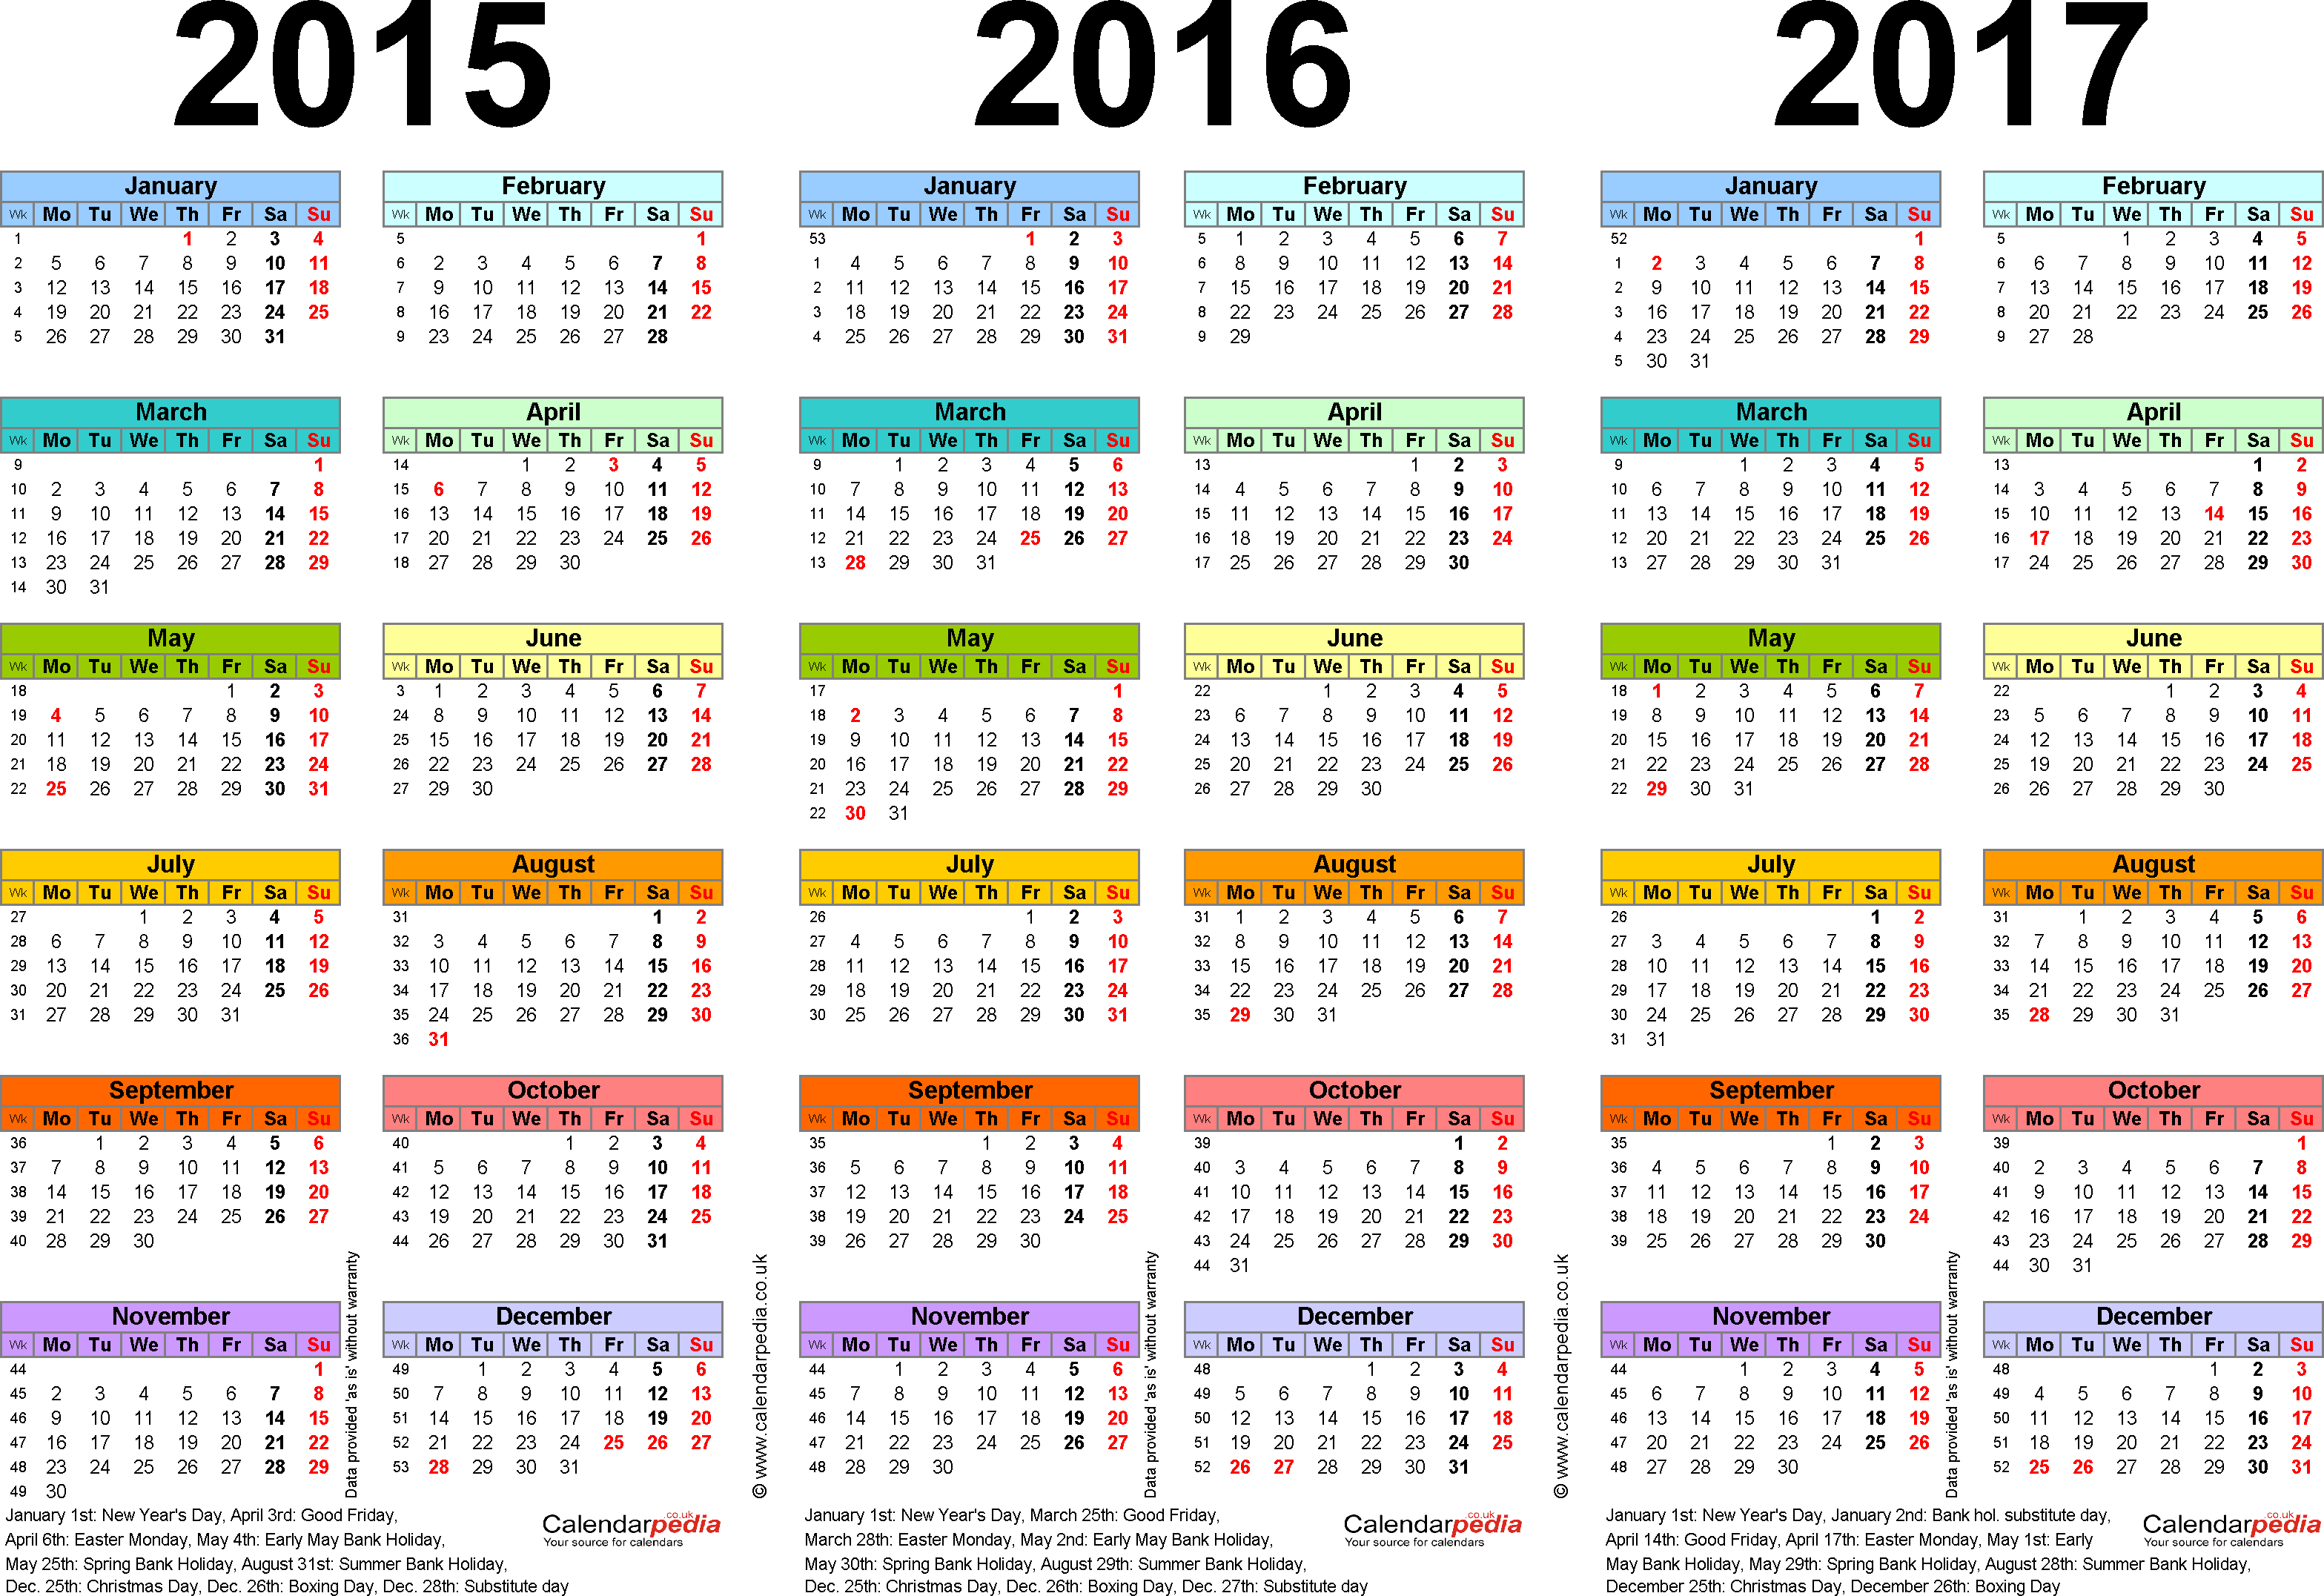 Download Template 1: Word template for three year calendar 2015-2017 in colour (landscape orientation, 1 page, A4)